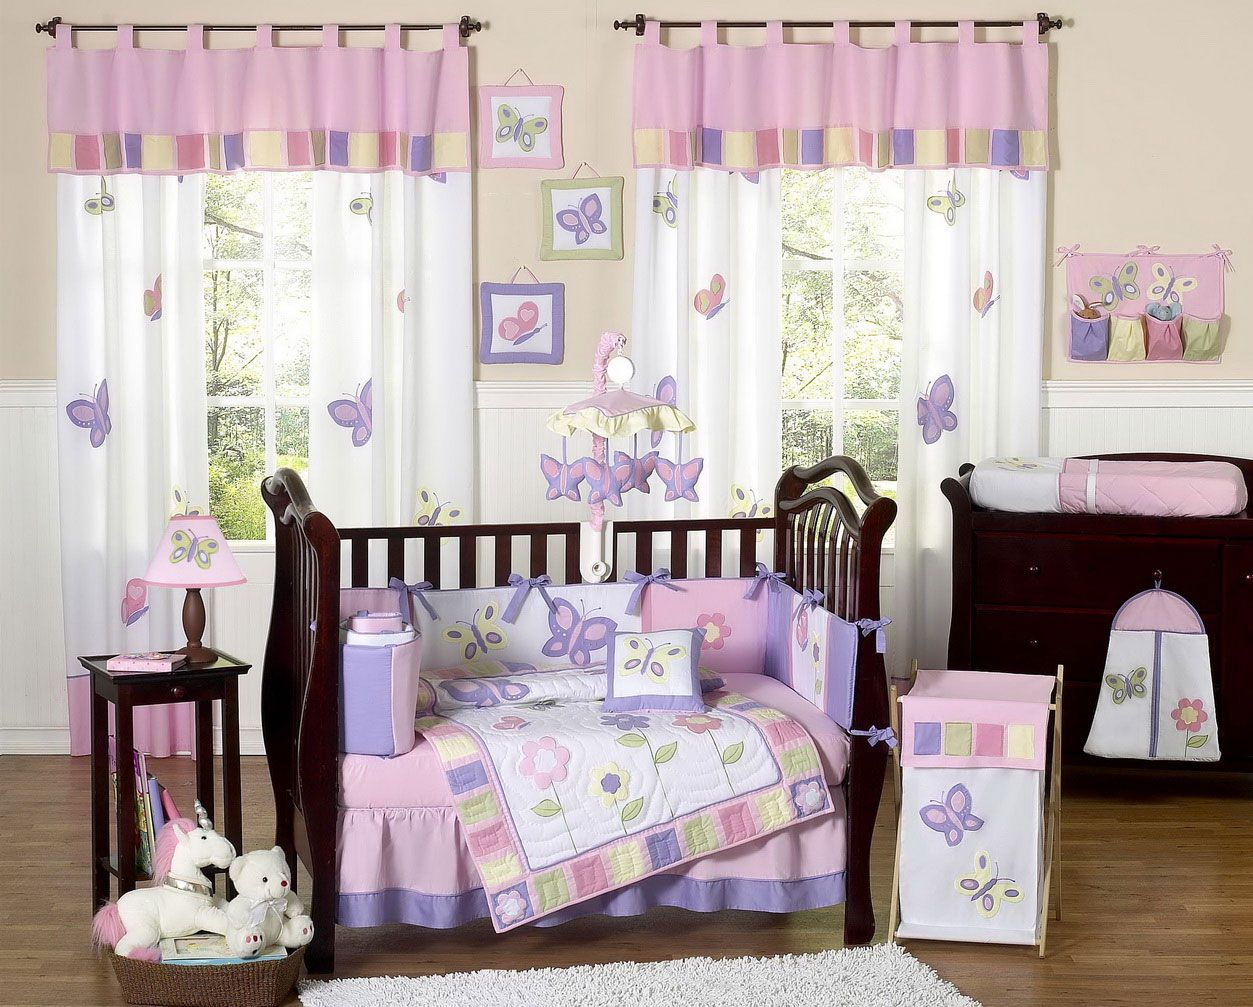 butterfly themed nursery for girlsGirl Nursery Theme Ideas